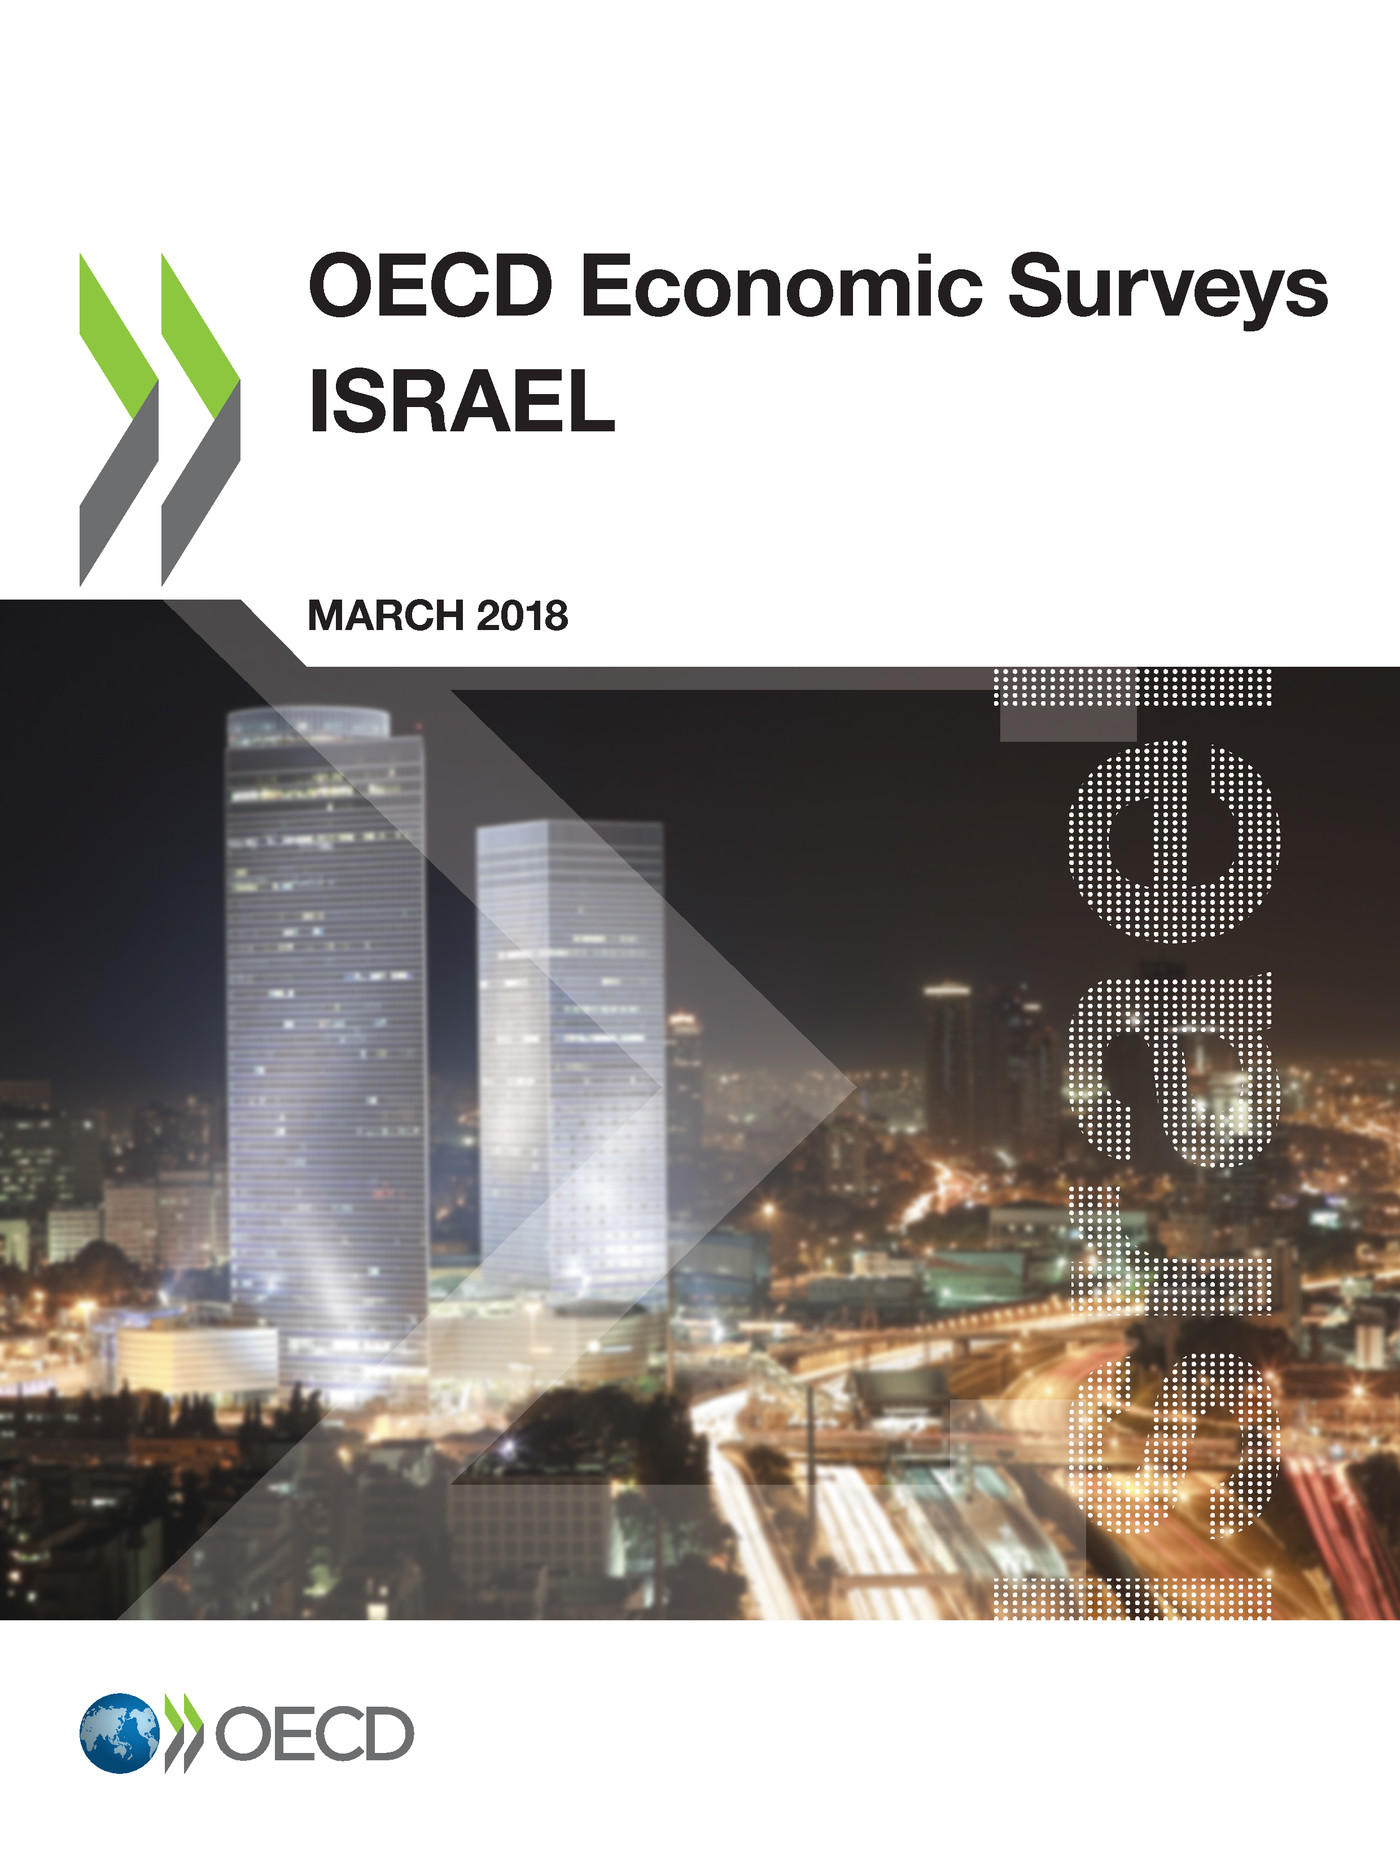 OECD Economic Surveys: Israel 2018 De  Collectif - OCDE / OECD